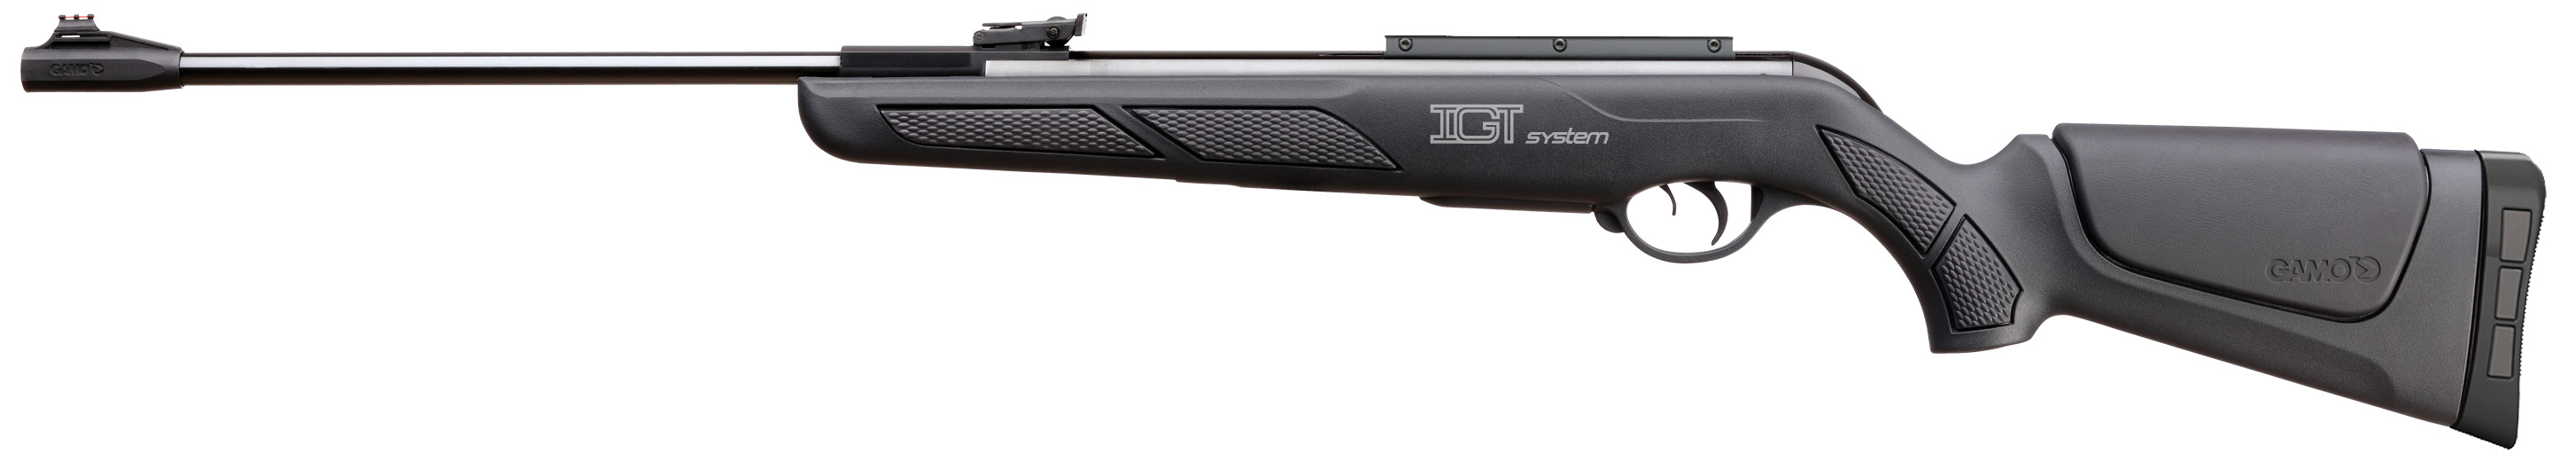 Gamo Shadow IGT .177 Piston Driven Air Rifle